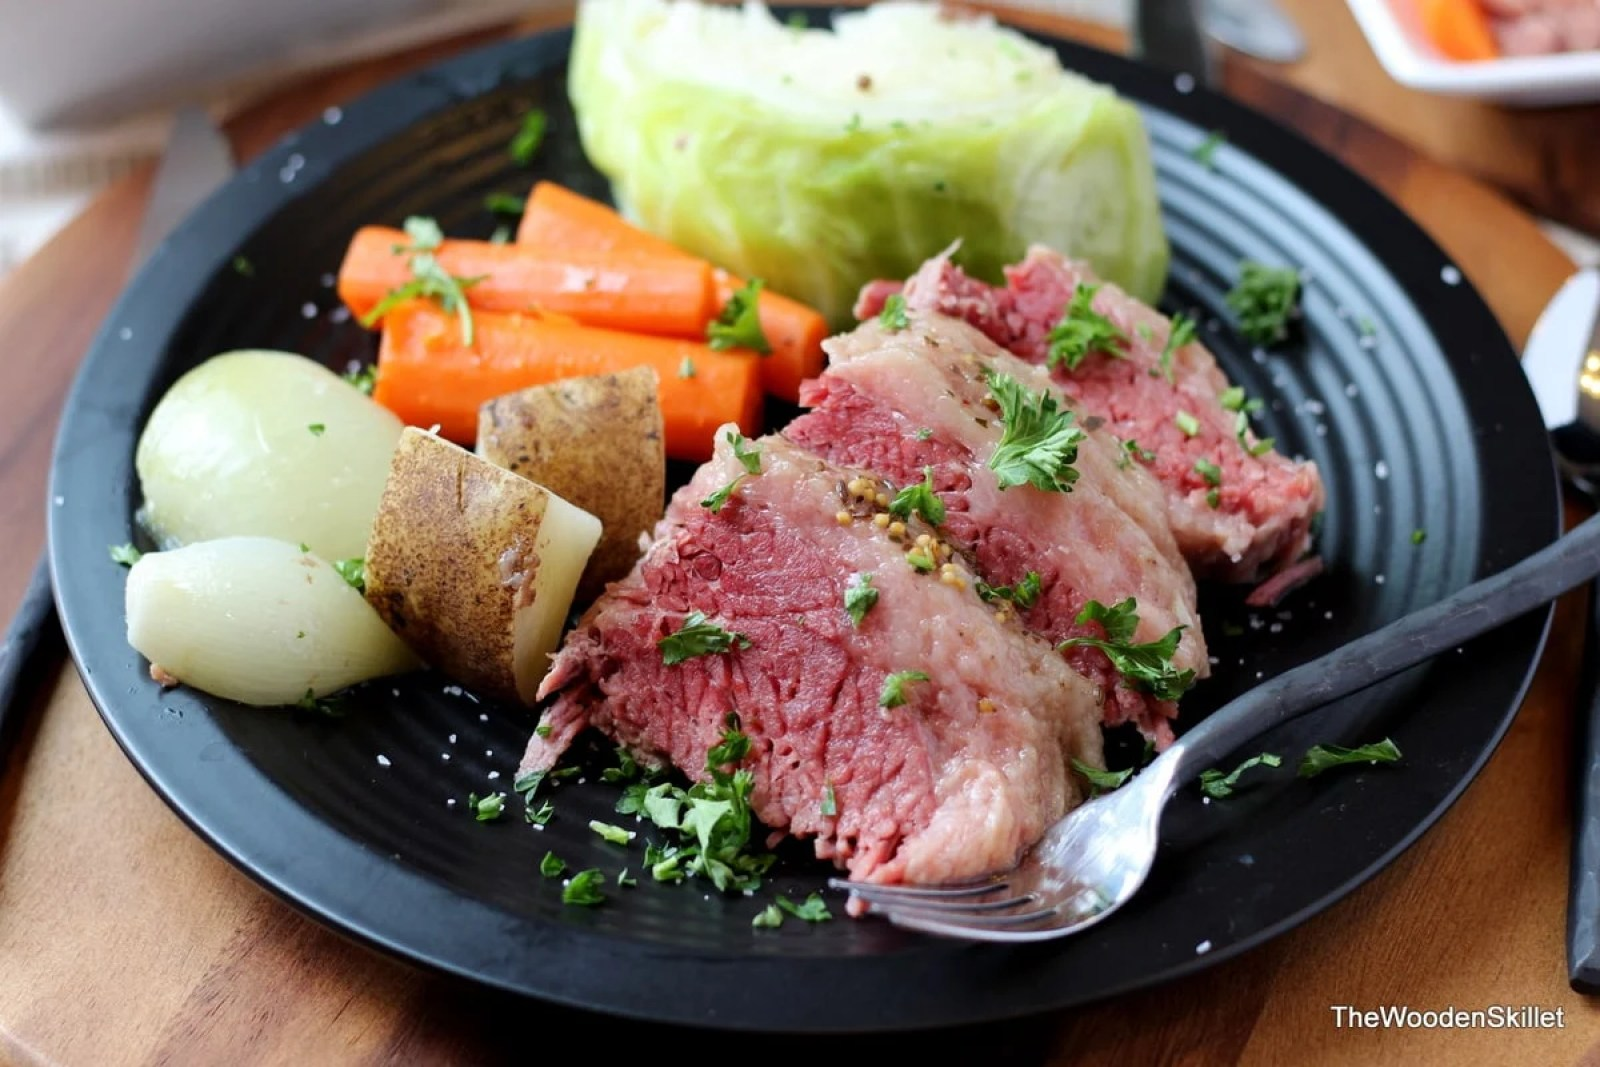 Corned Beef and Cabbage - thewoodenskillet.com